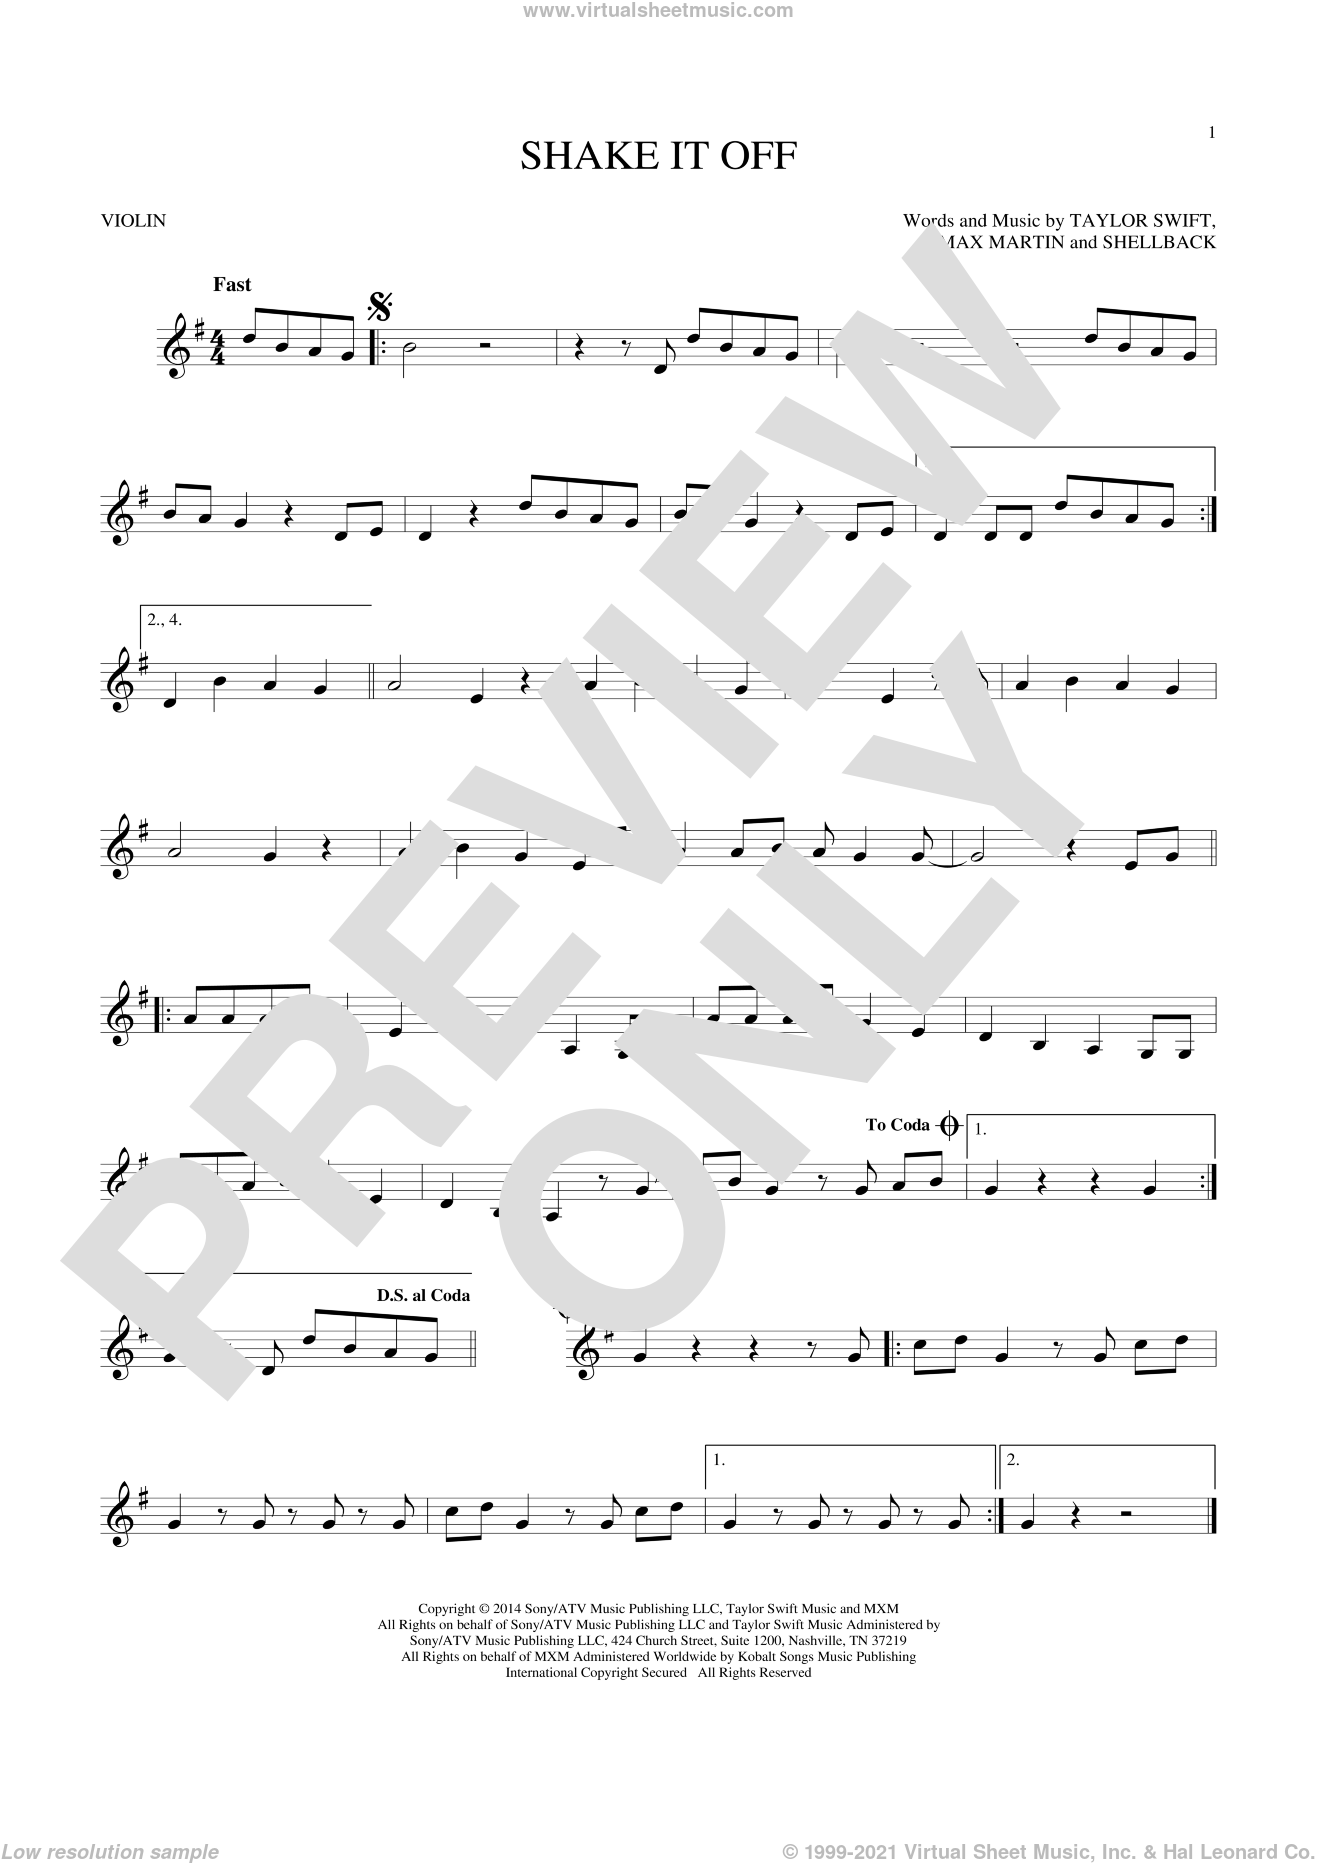 Shake It Off sheet music for violin solo by Shellback, Johan Schuster, Max Martin and Taylor Swift. Score Image Preview.